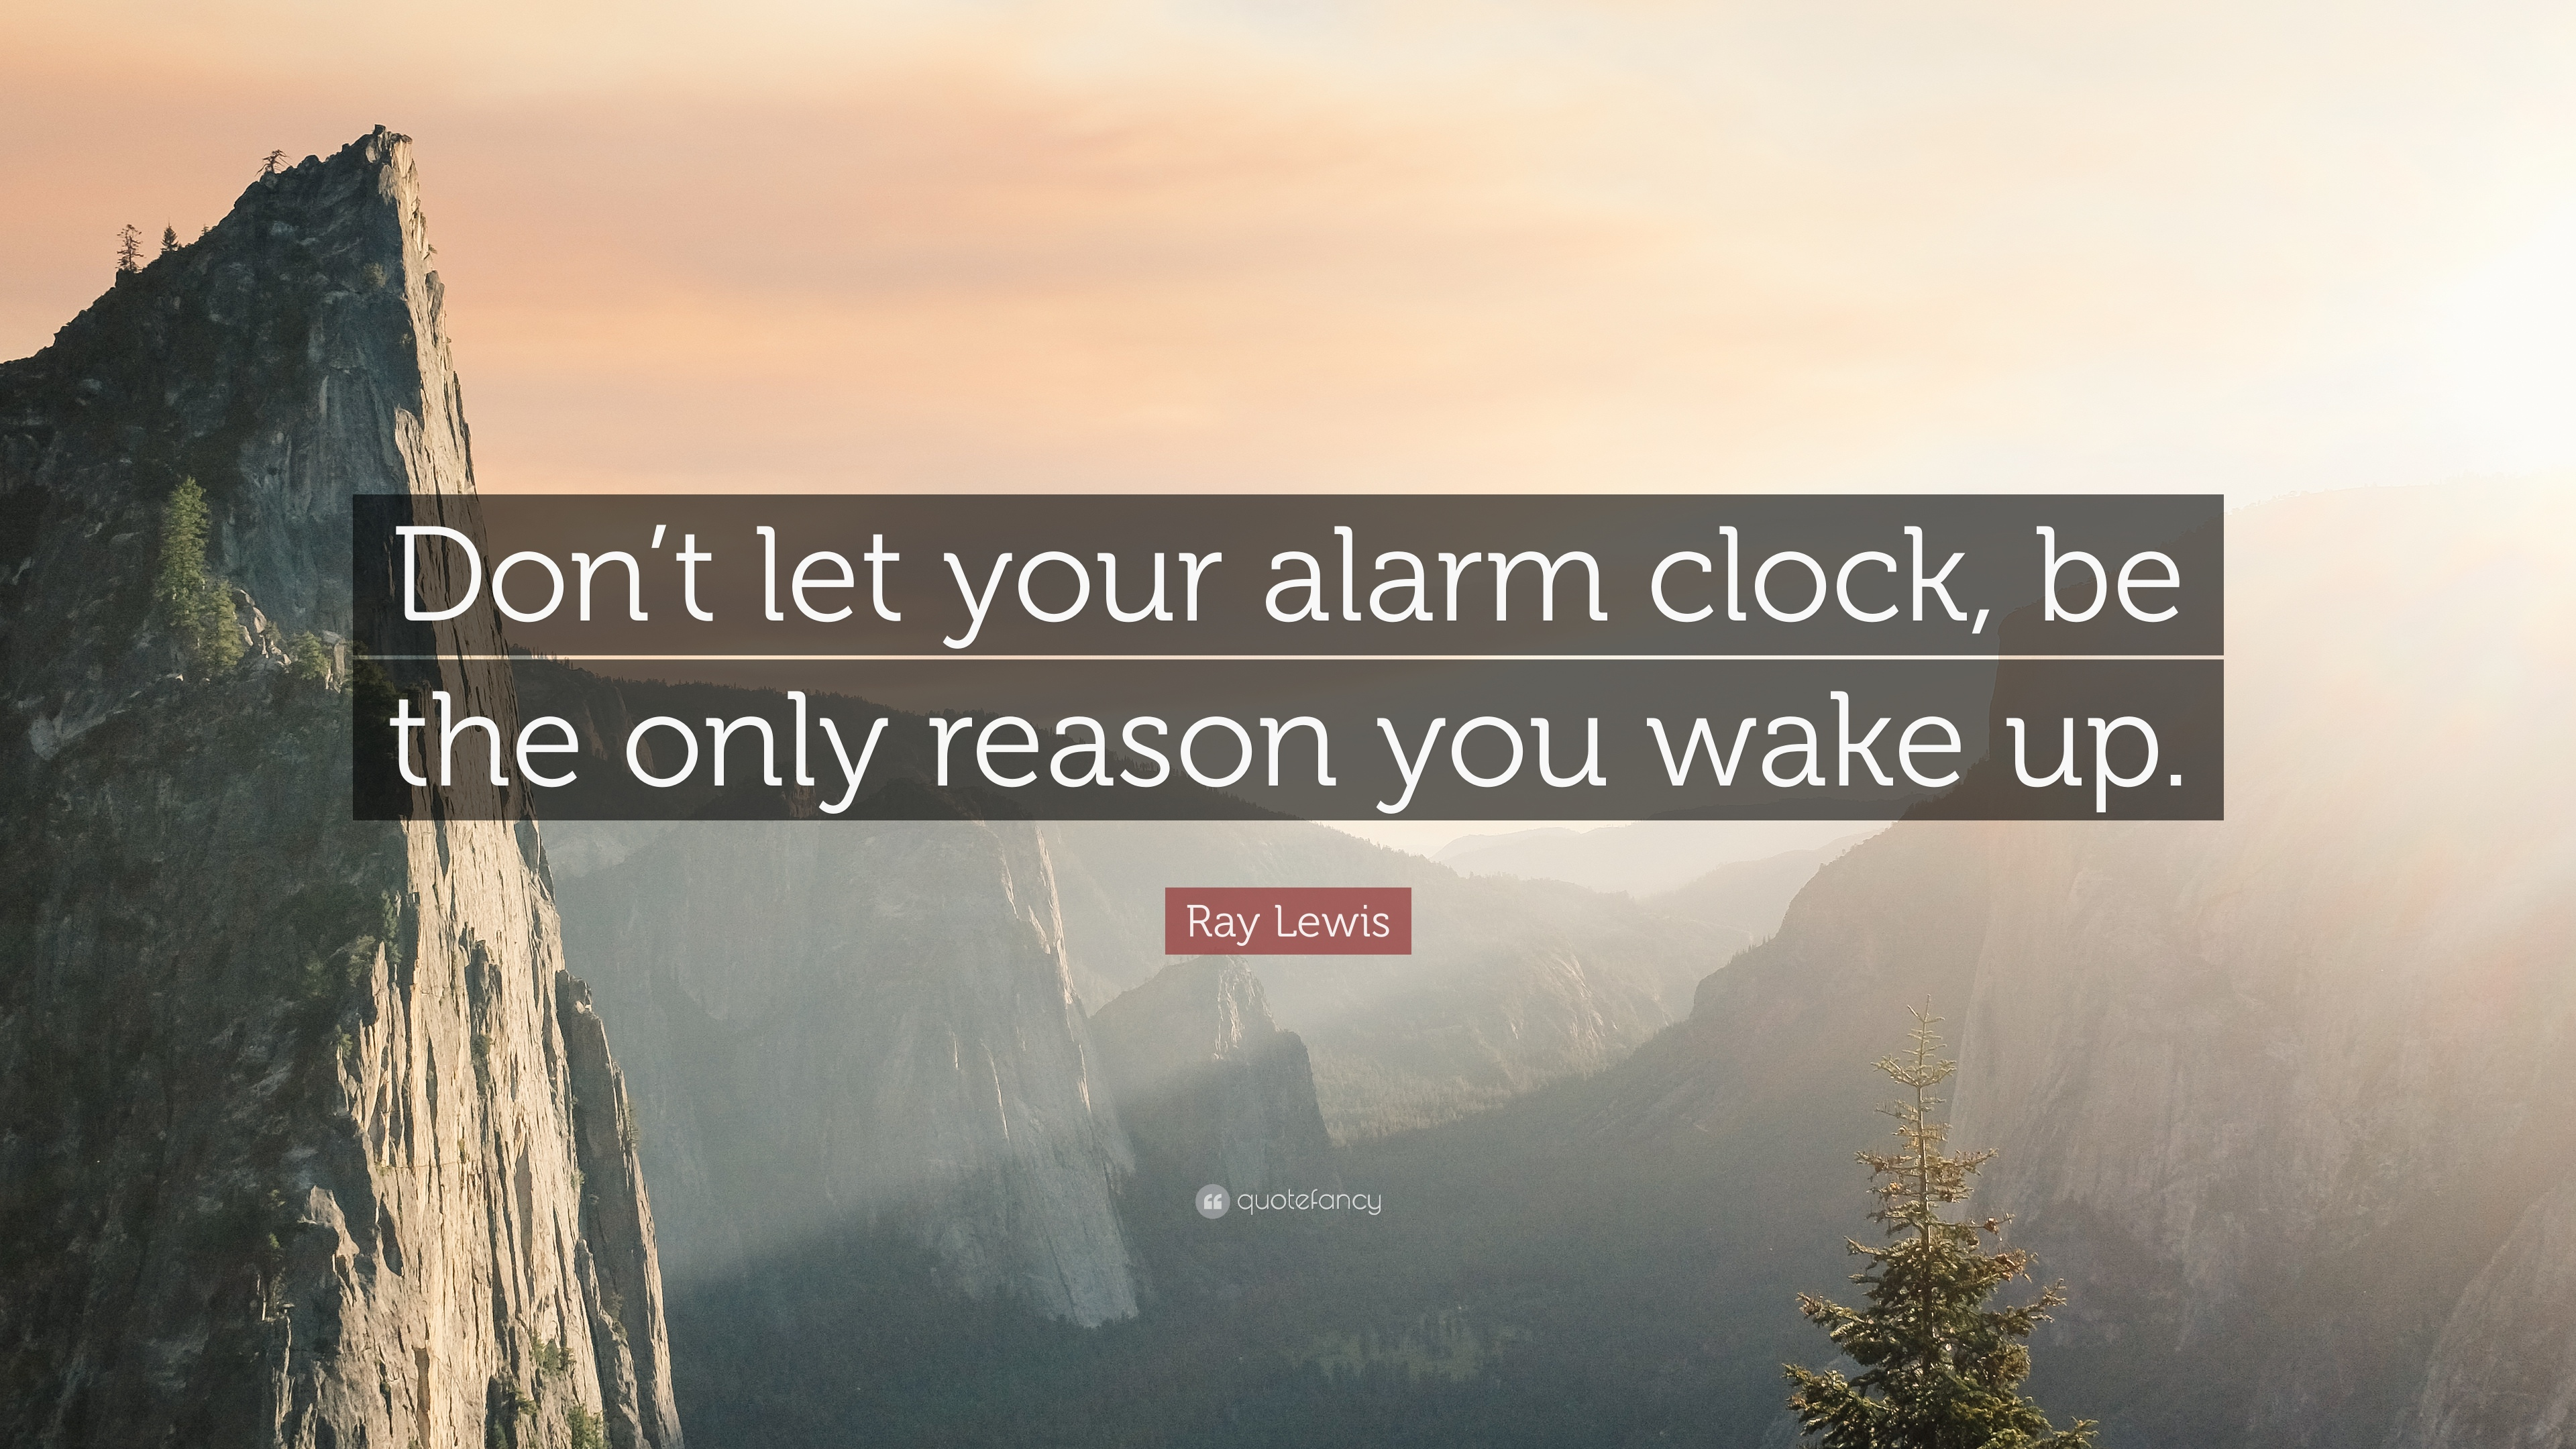 """Ray Lewis Quotes About Success: Ray Lewis Quote: """"Don't Let Your Alarm Clock, Be The Only"""